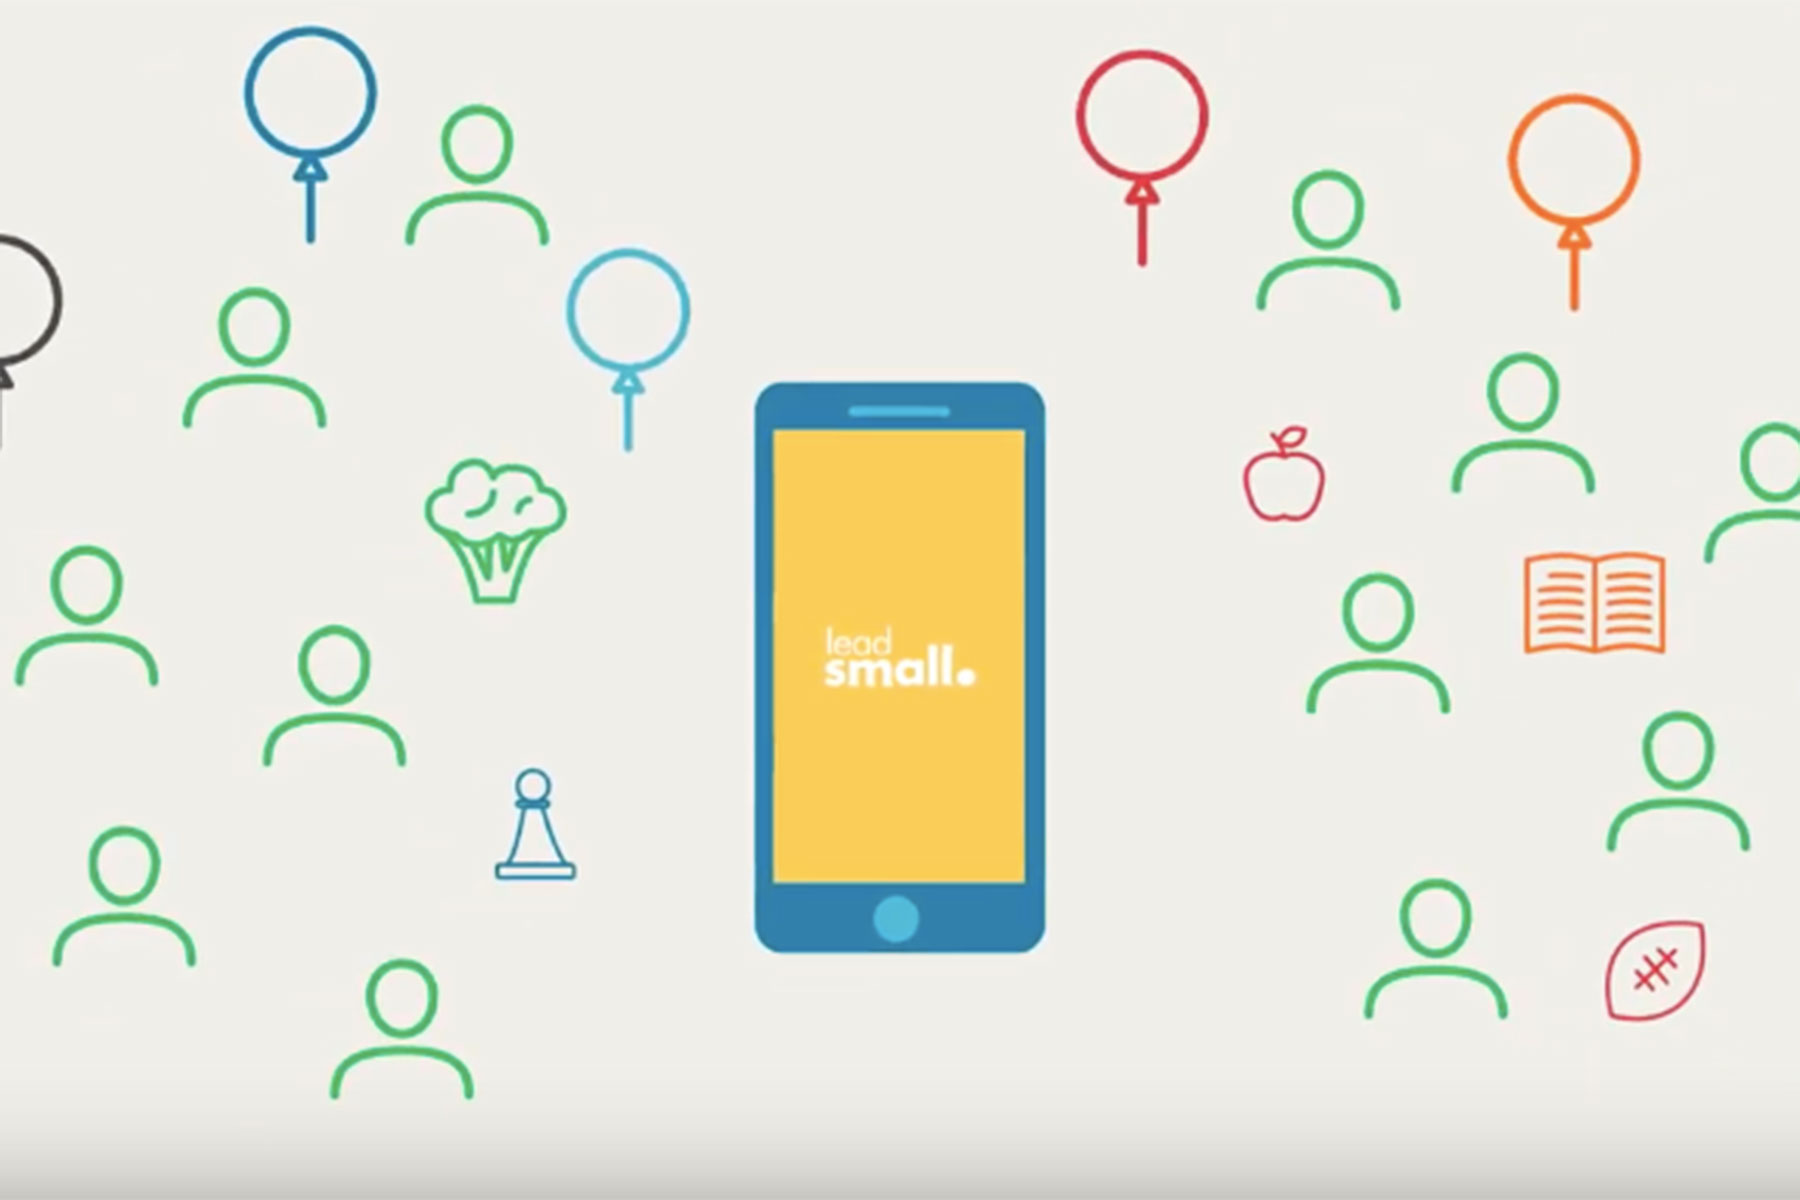 Getting Your Small Group Leaders to Download the Lead Small App